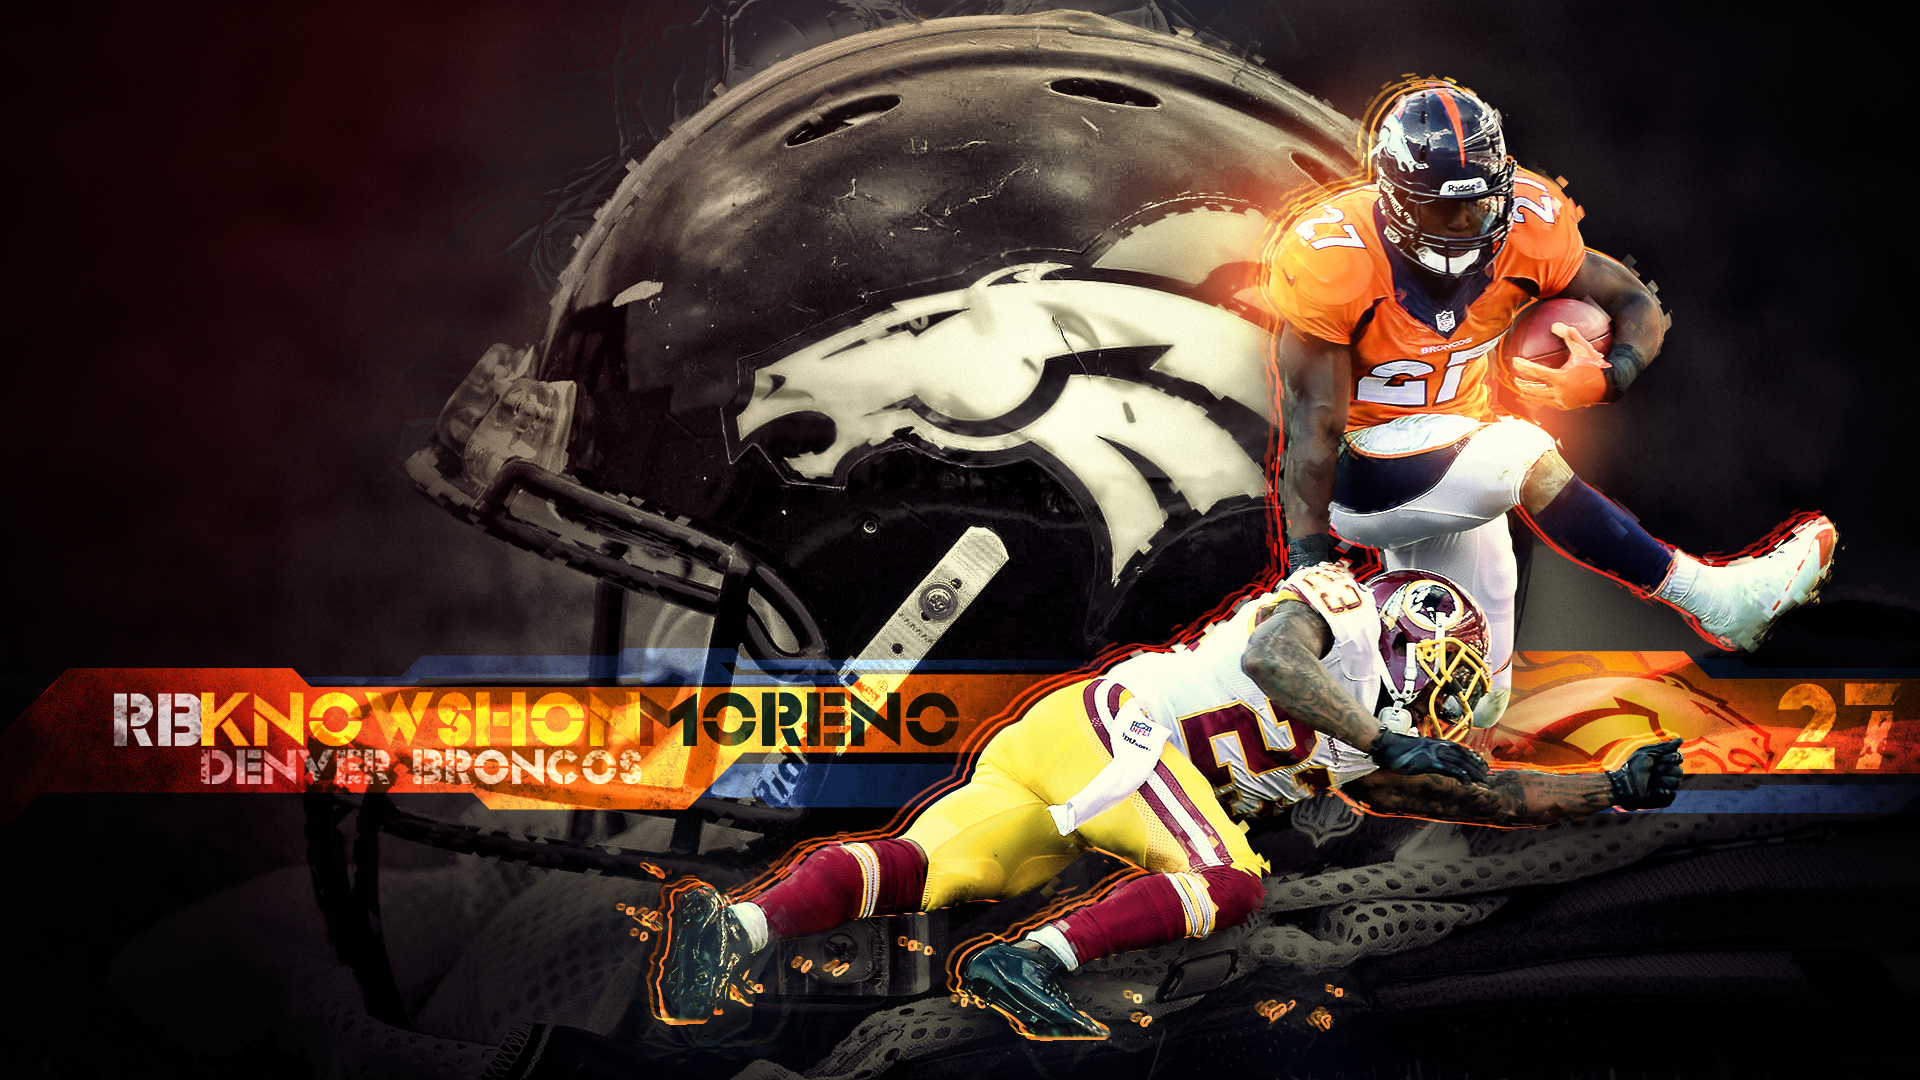 Housh's Wallpaper Gallery - Page 8Demaryius Thomas Wallpaper